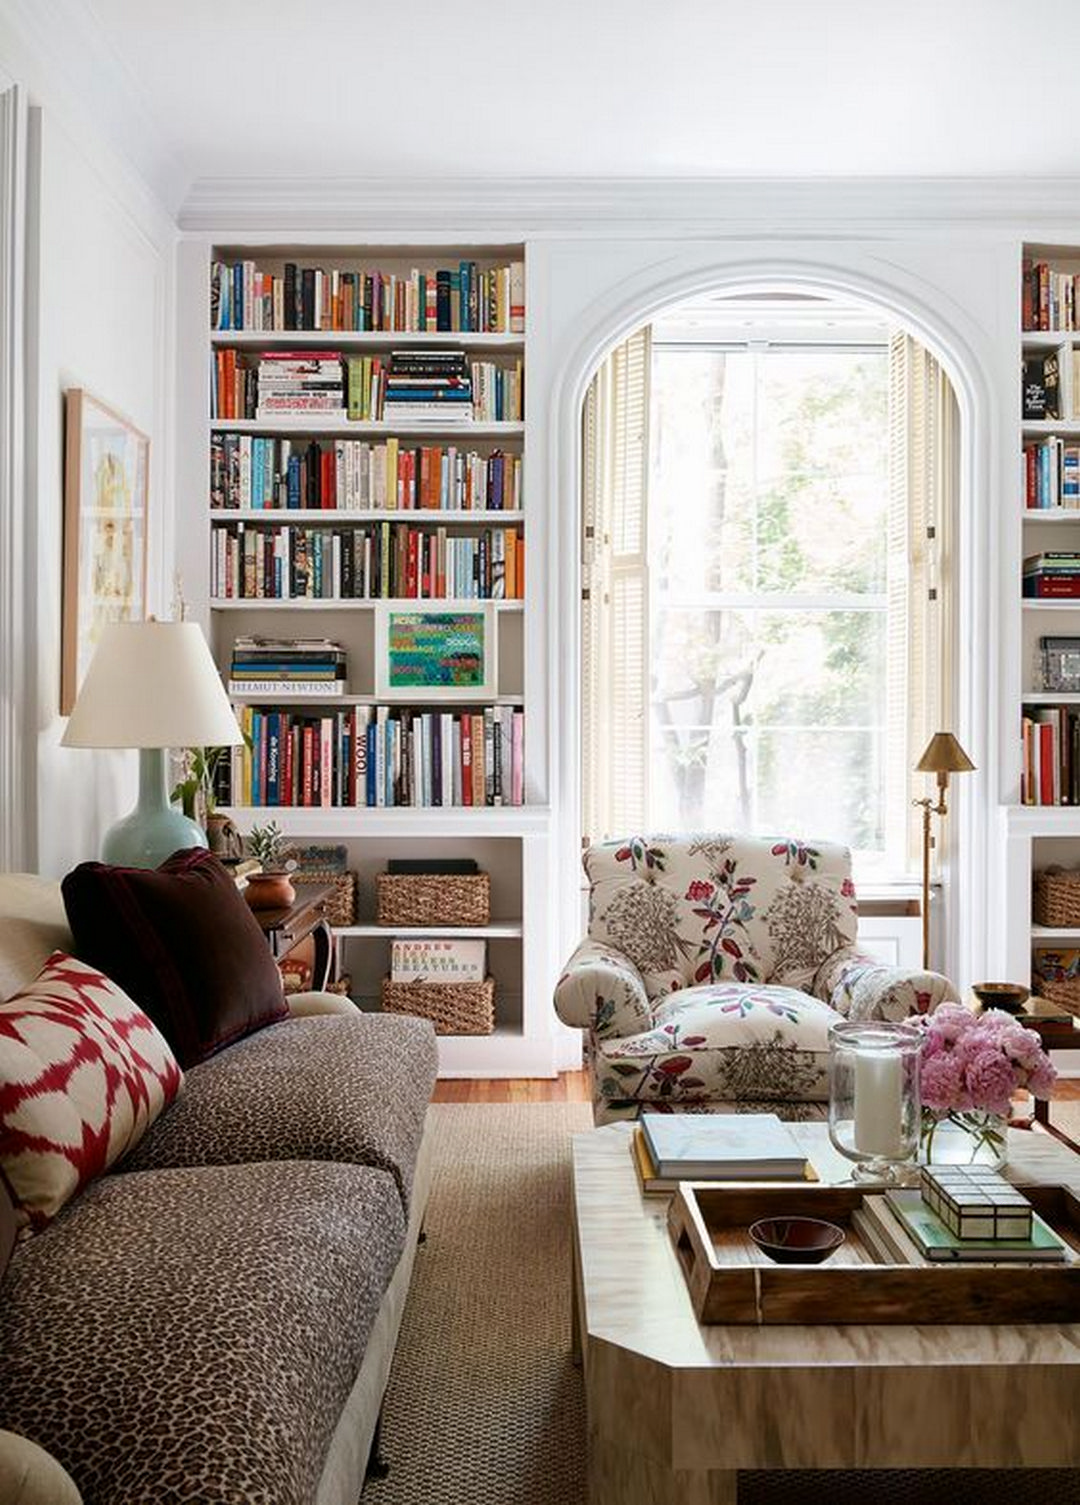 ... Chic Pre War Apartment Via A Little Bit Of Classic, Ethnic, And Floral  Influence, With Just A Touch Of Color In This Refined, Eclectic Living Room.